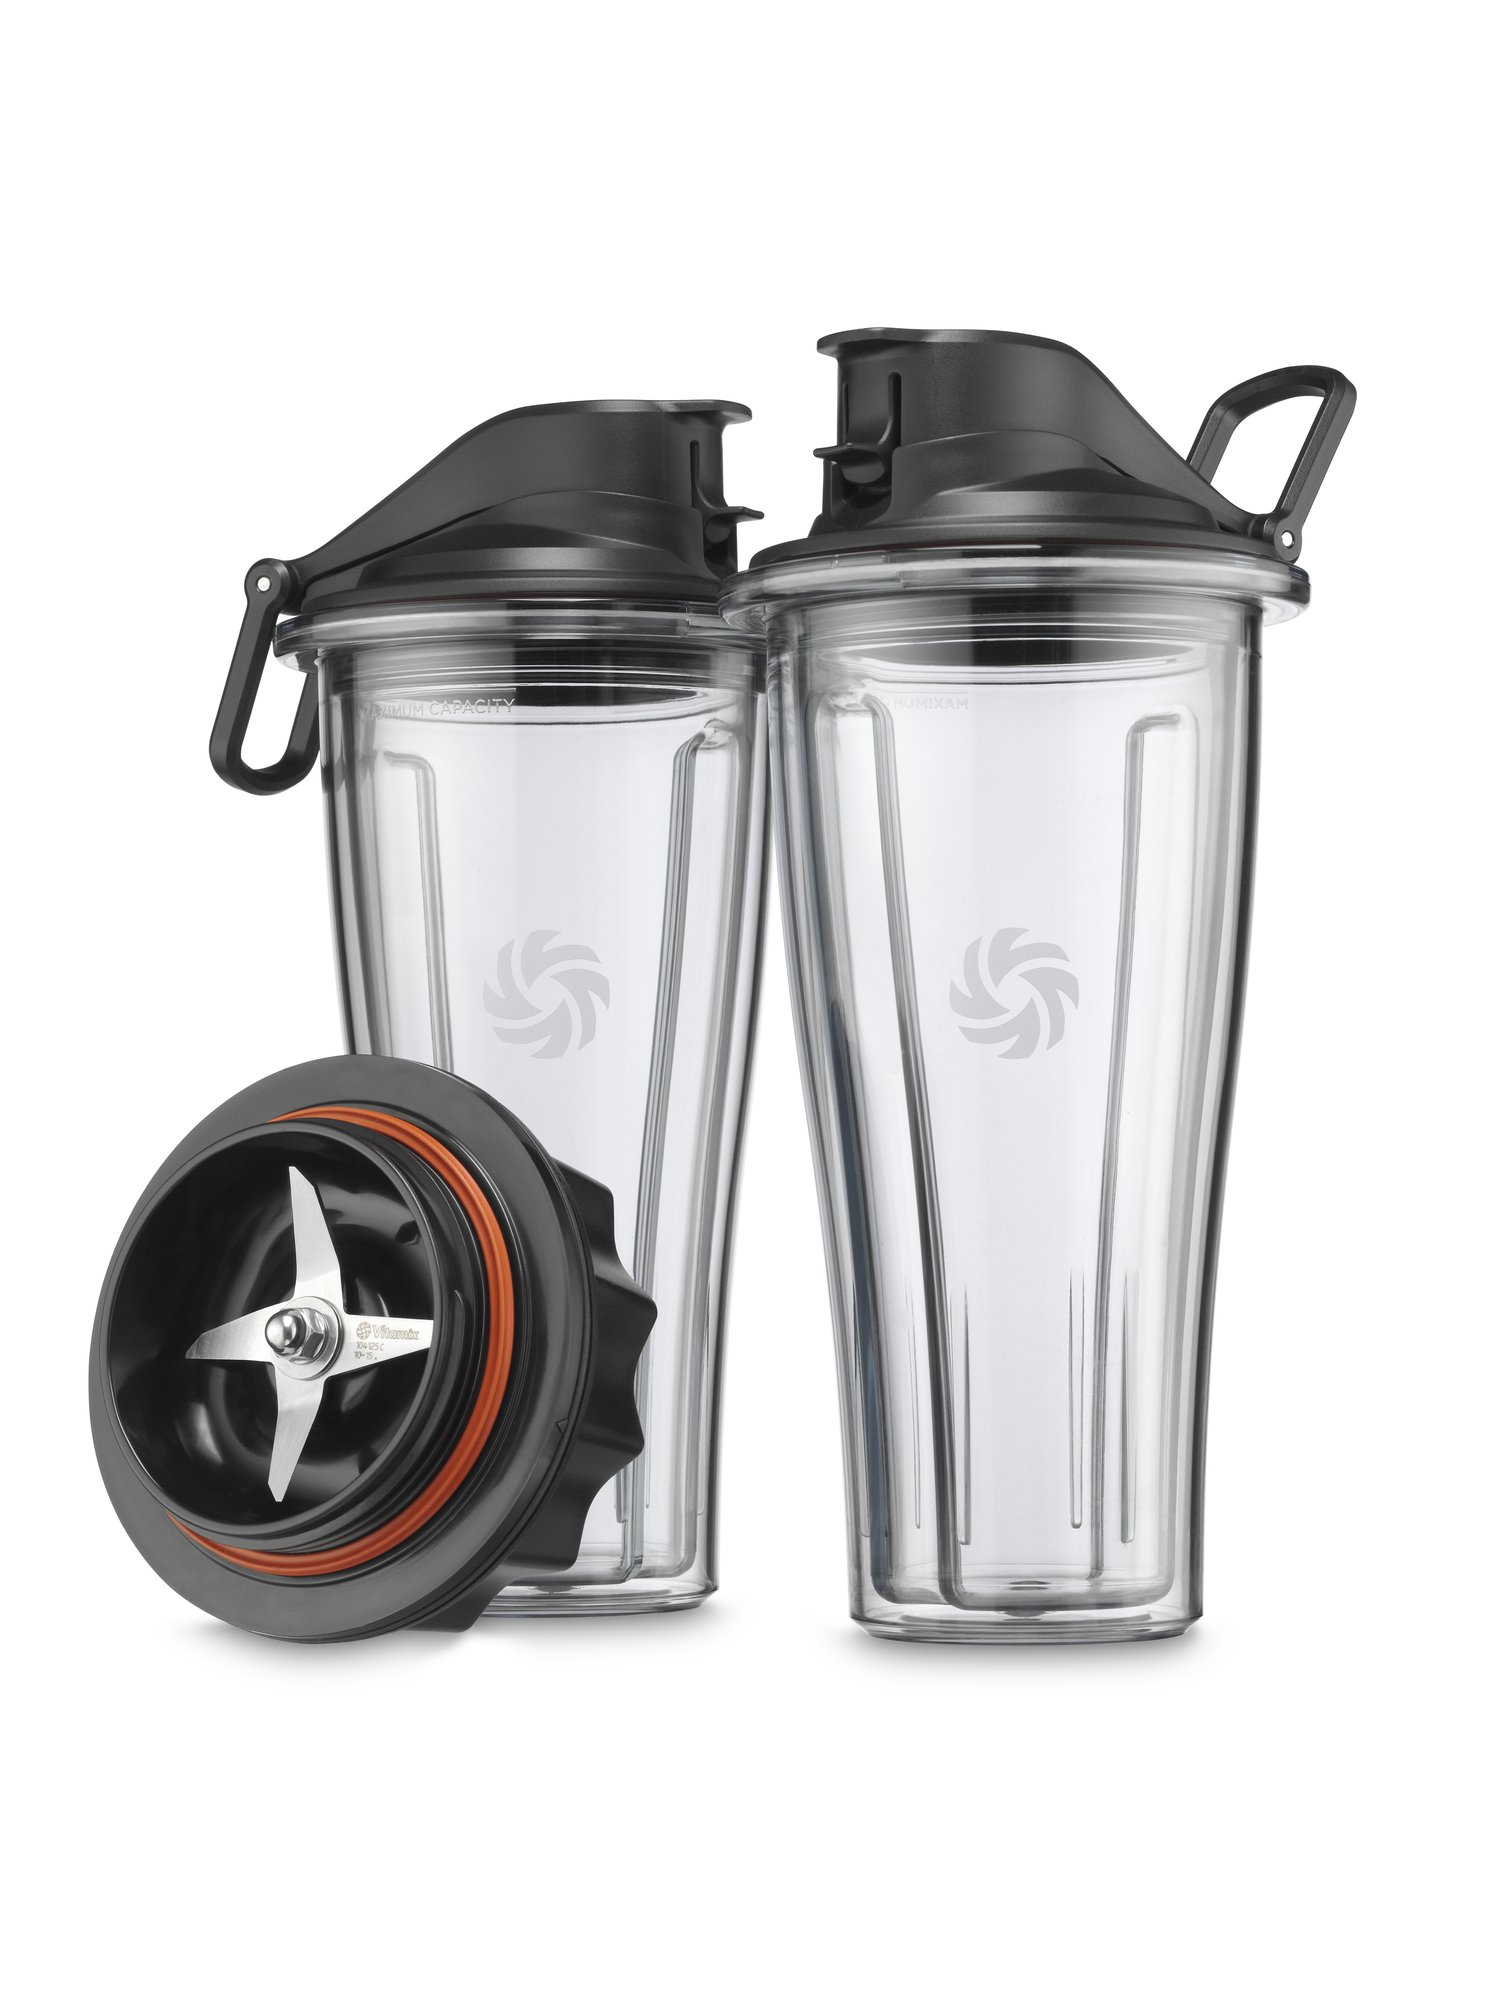 Vitamix Blending Cups Starter Kit, Clear by Vitamix